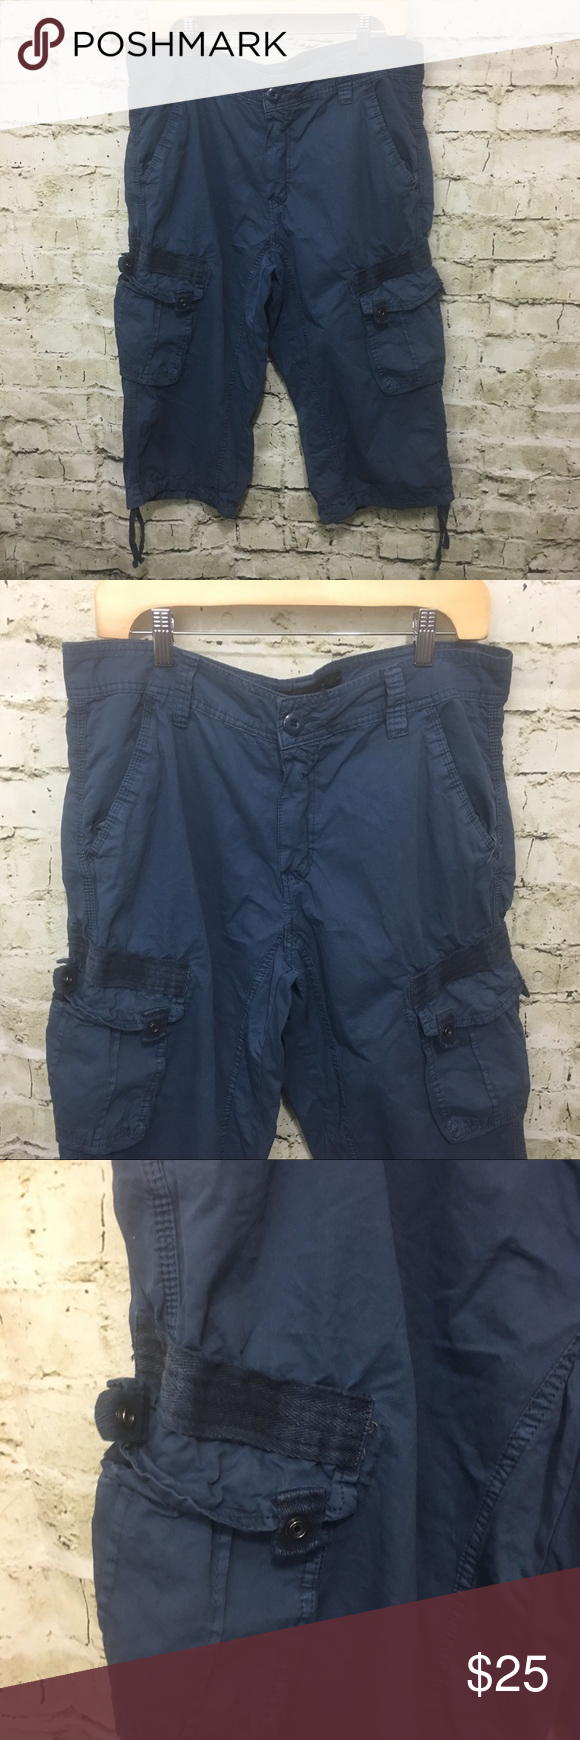 a63281975b XRAY Jeans Cargo Skater Shorts X-ray Jeans Women's Blue Cargo Skater Shorts  Capris Size 32 in gently used condition with no flaws.